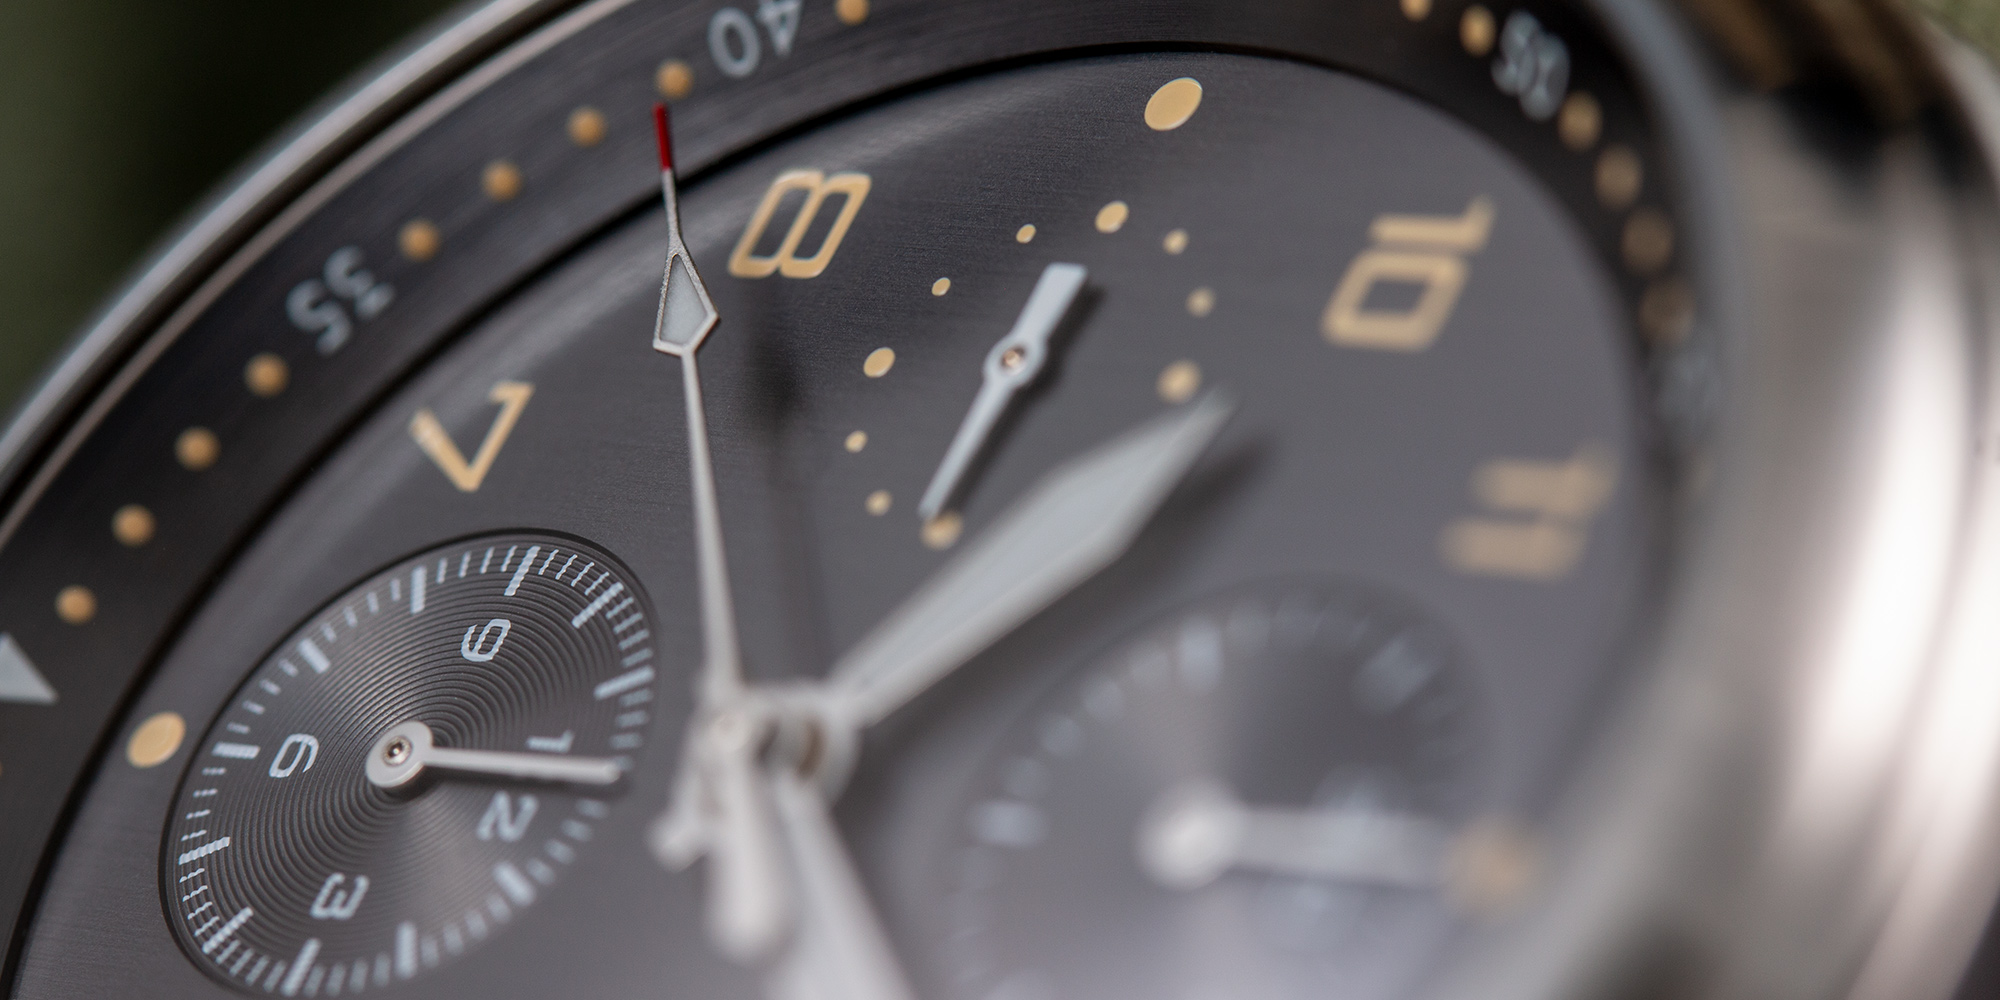 pinion-elapse-chronograph-anthracite-dial-watch-002